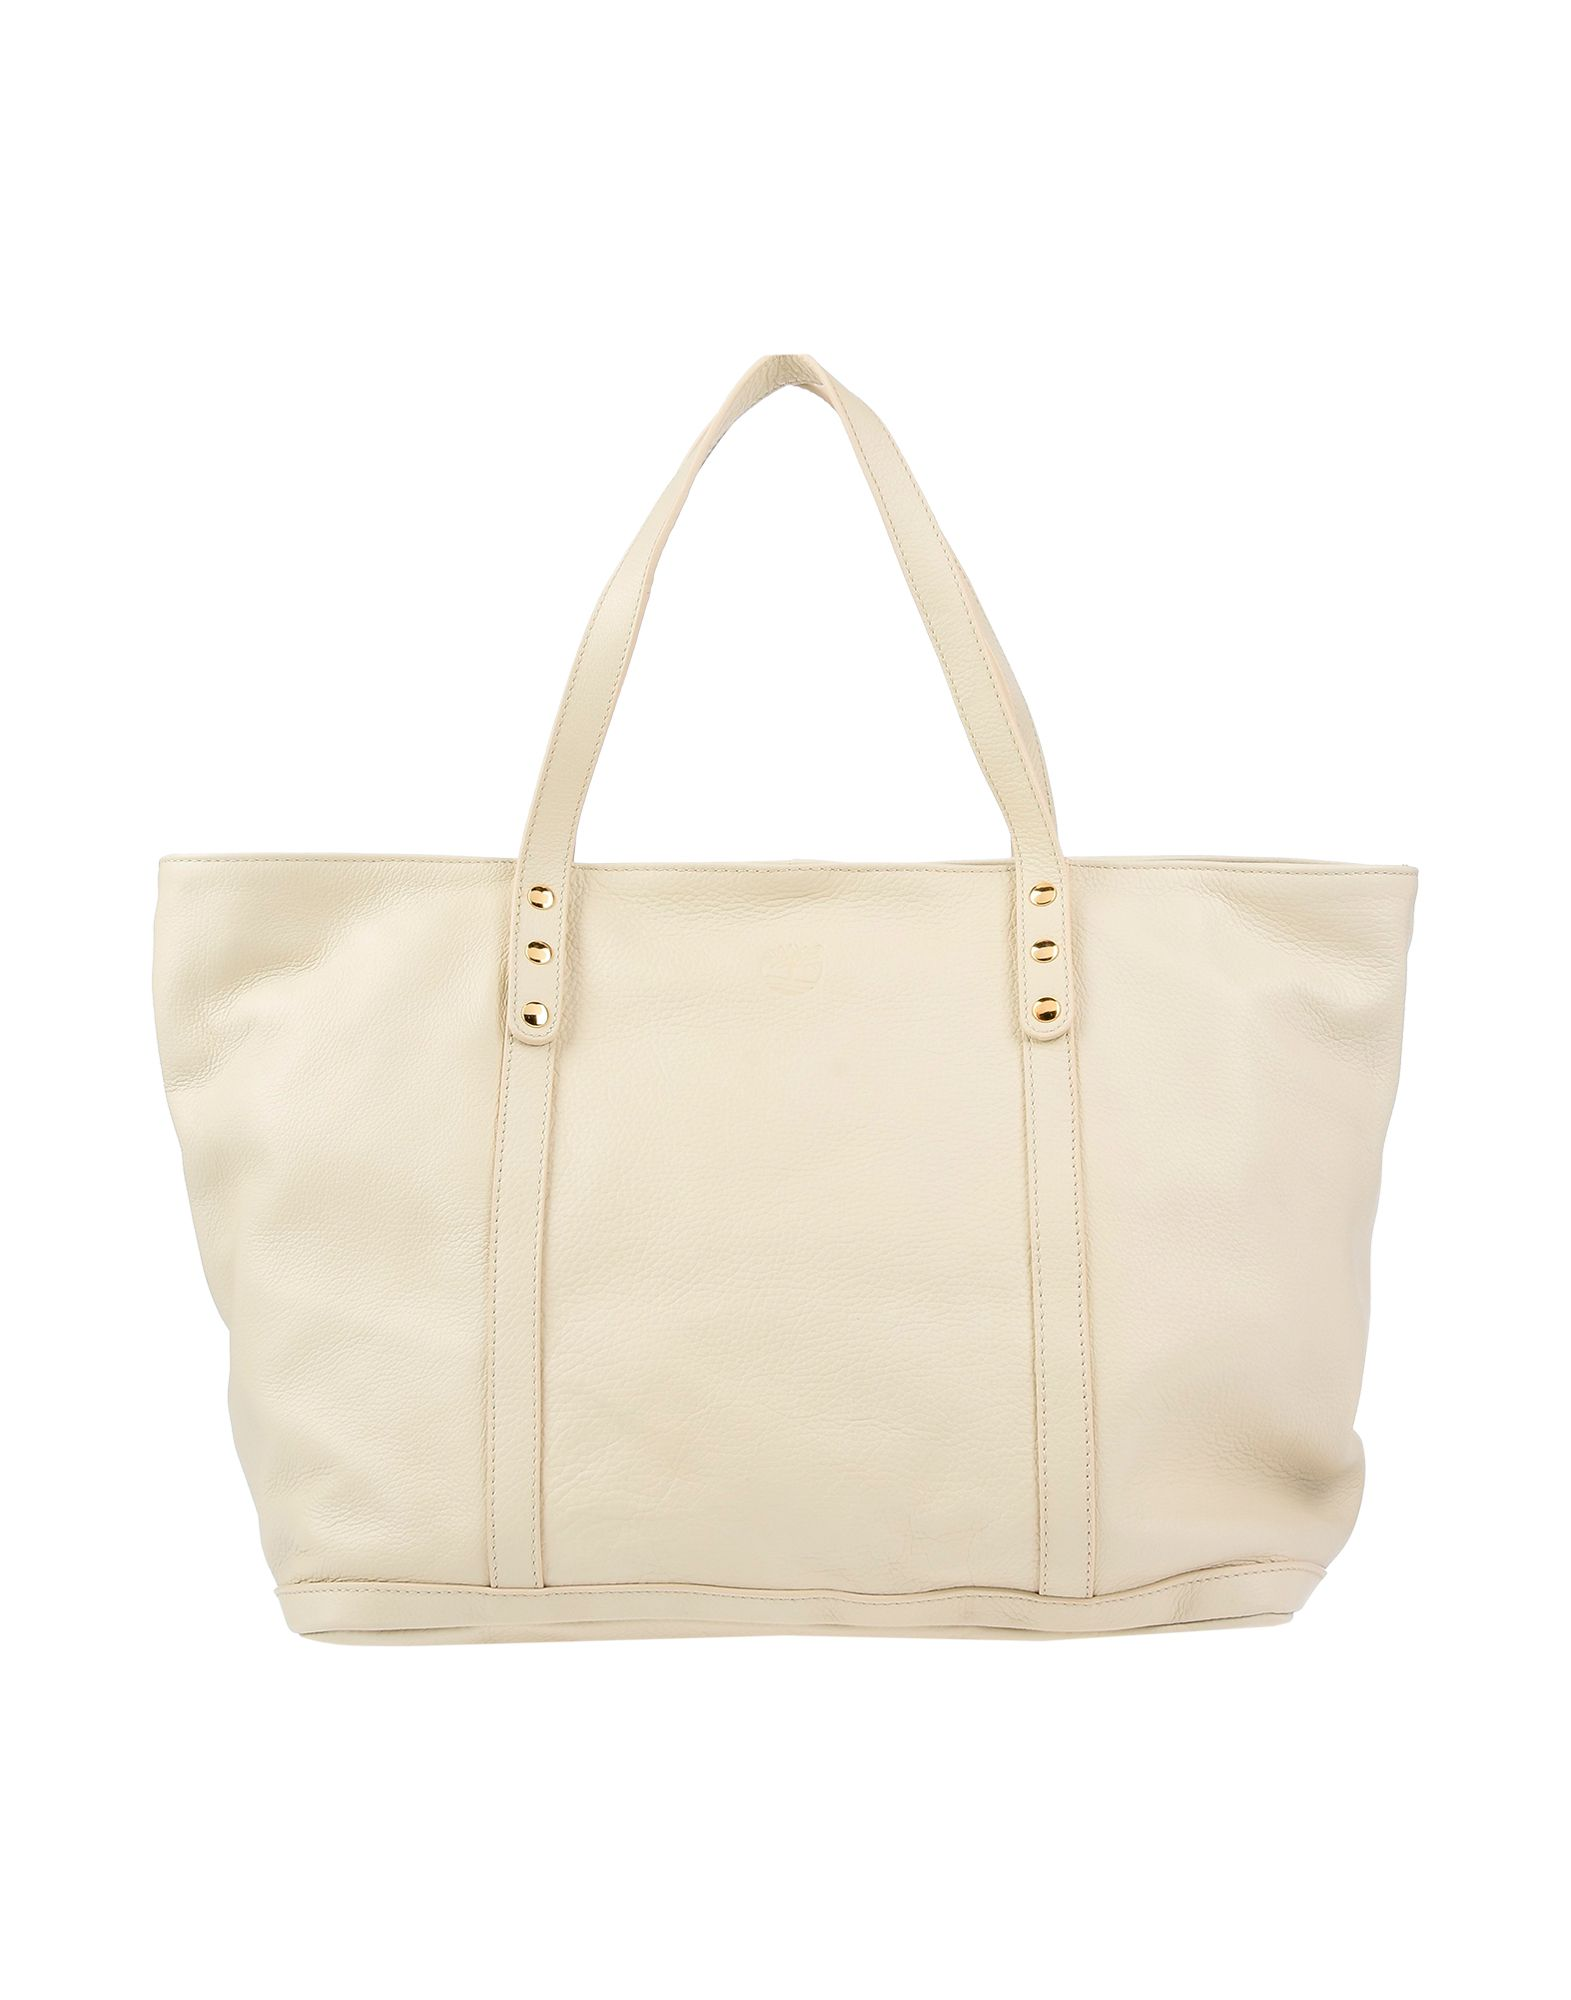 Timberland - Bags - Handbags - On Yoox.com